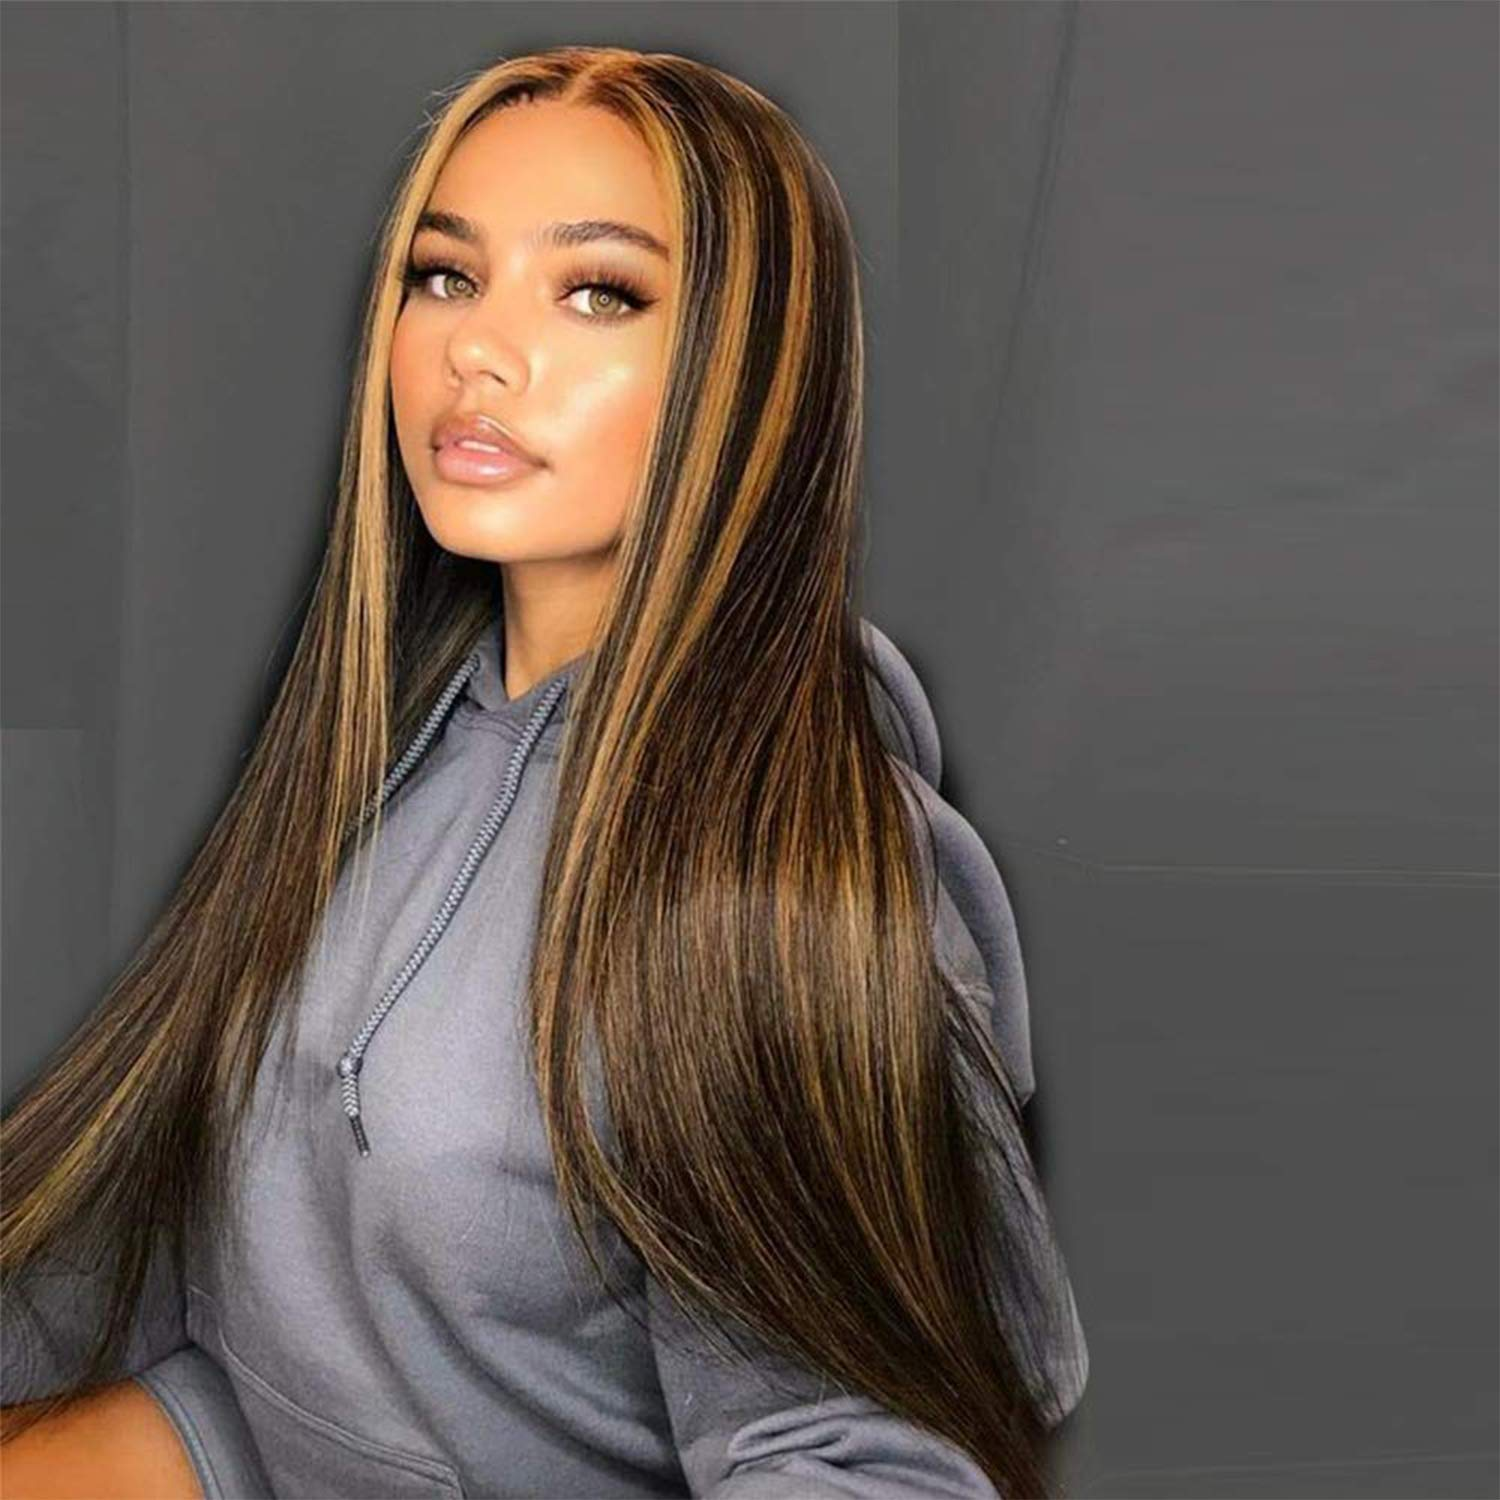 Long Wigs for Women Straight Highlights Wig Middle Part Highlights Synthetic Hair Wigs for Women Hair Replacement Wigs For Daily Party Wear